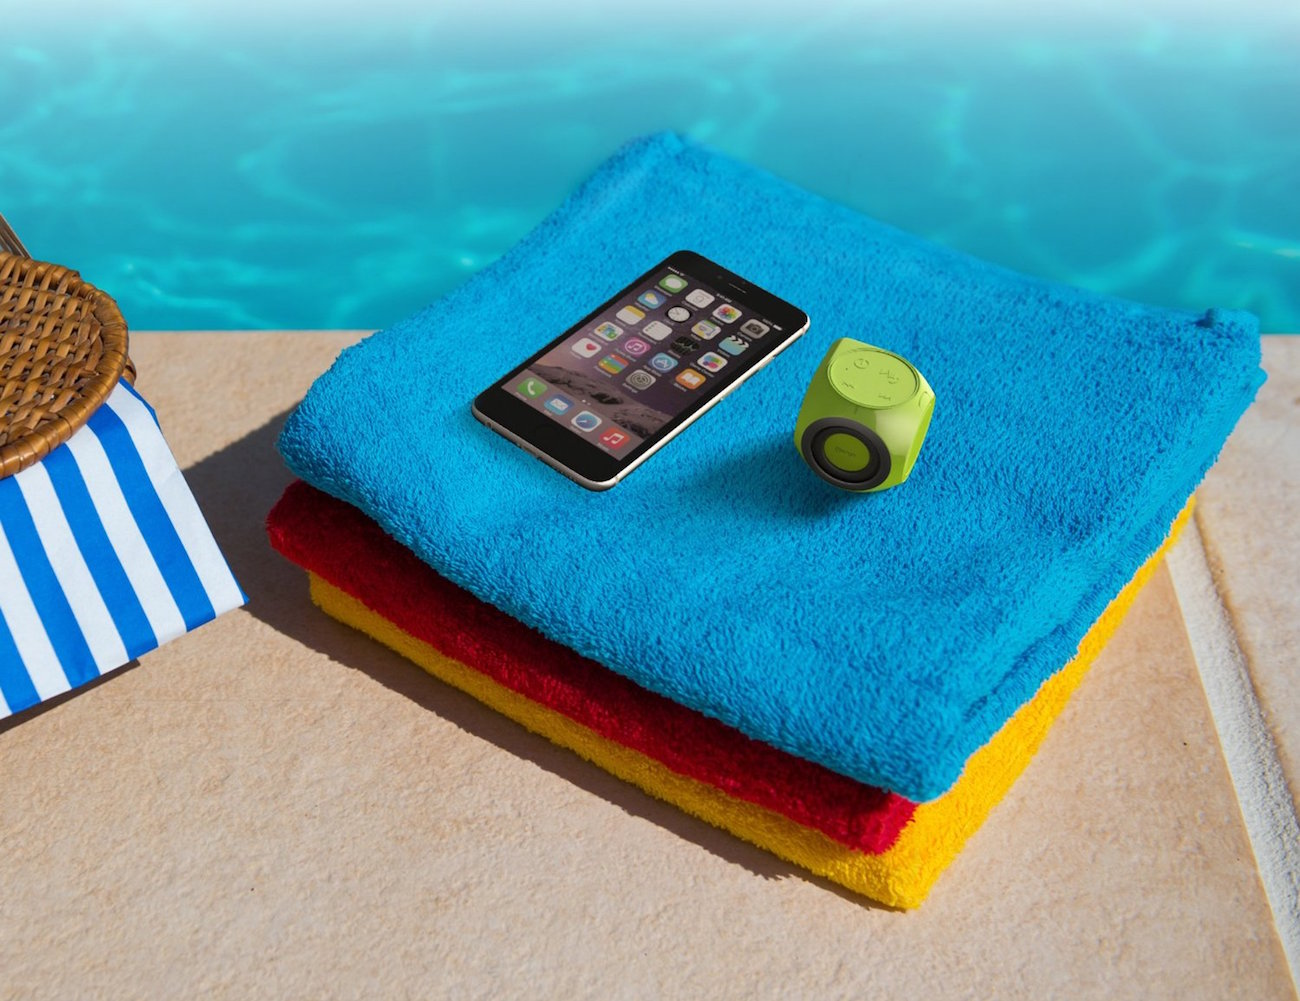 mengo-aquacube-waterproof-bluetooth-speaker-04